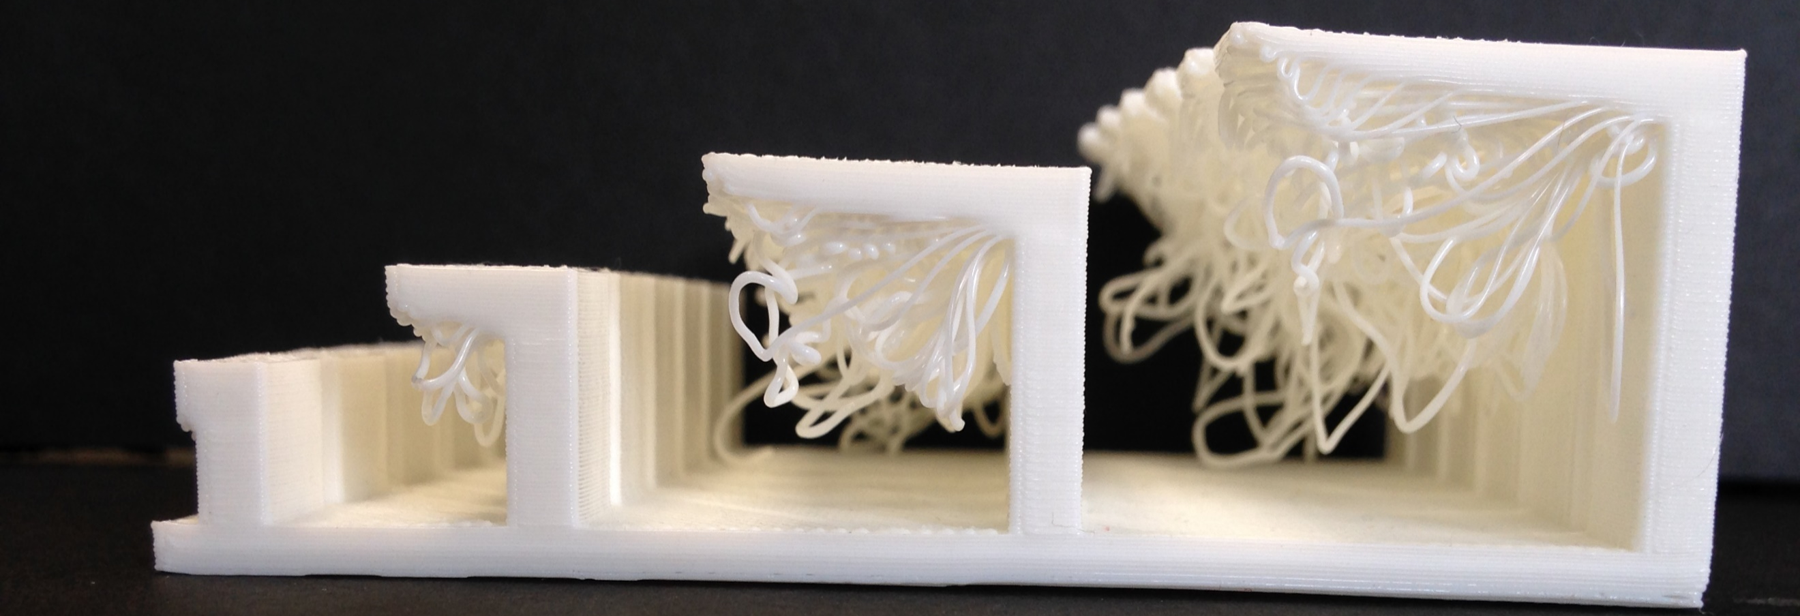 3D Print Overhangs and How To Deal With Them